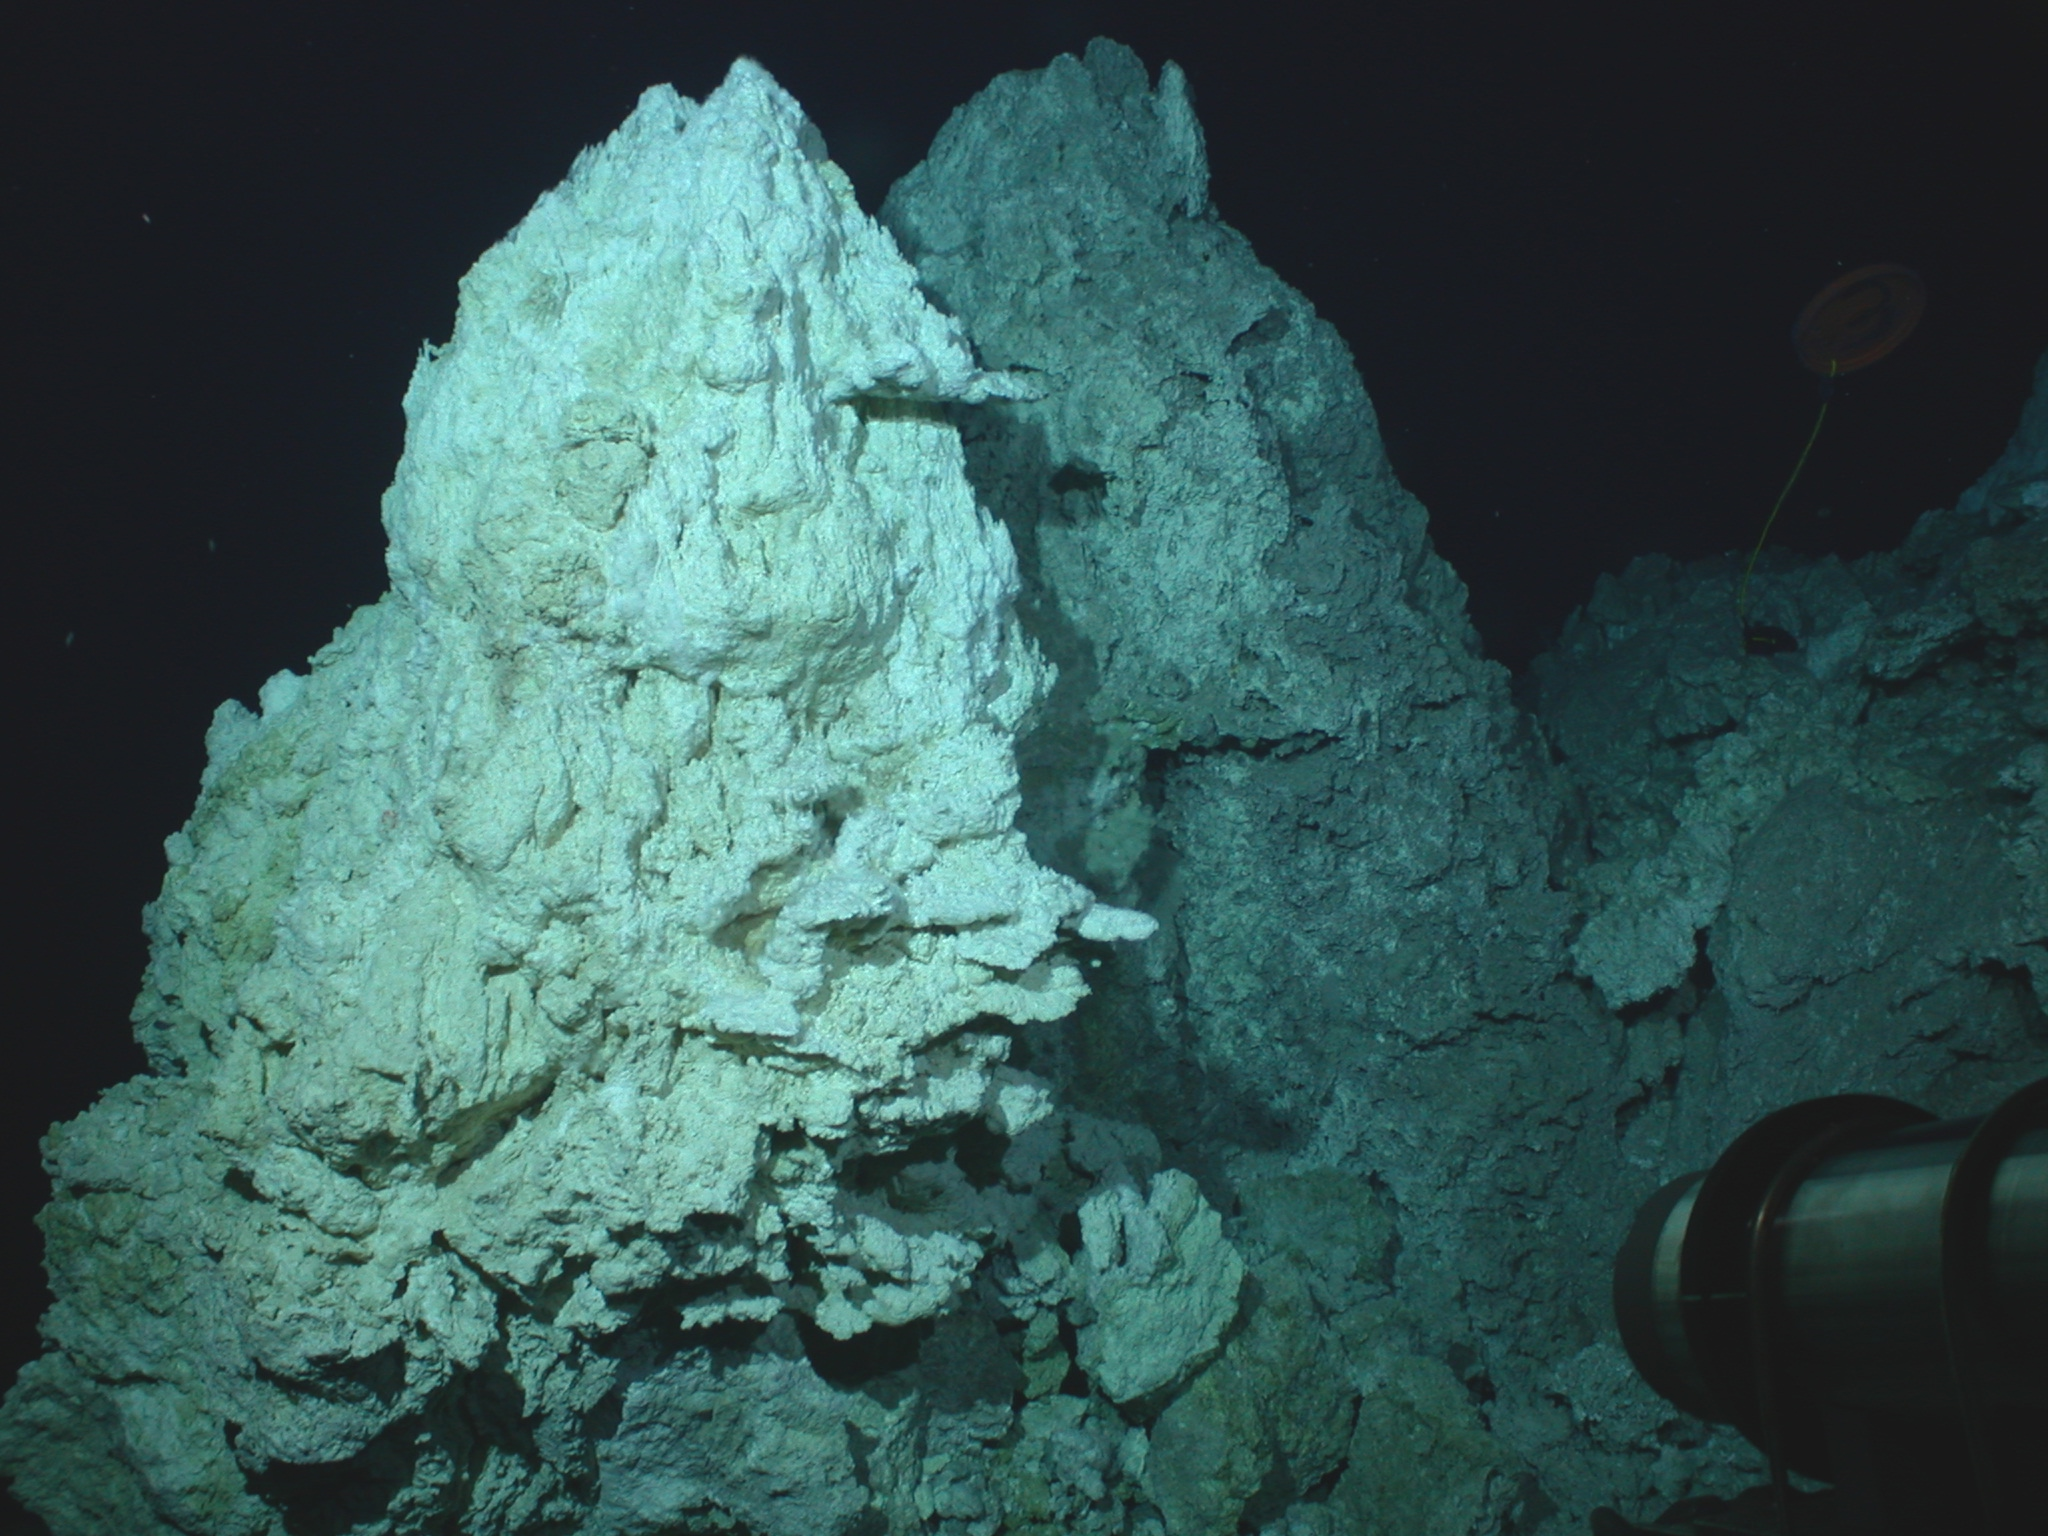 A 60 meter (200 feet) tall carbonate chimney in the field of hydrothermal vents known as the Lost City, which could also be home to rock-powered life. Credit: NOAA/University of Washington. Image credit: None